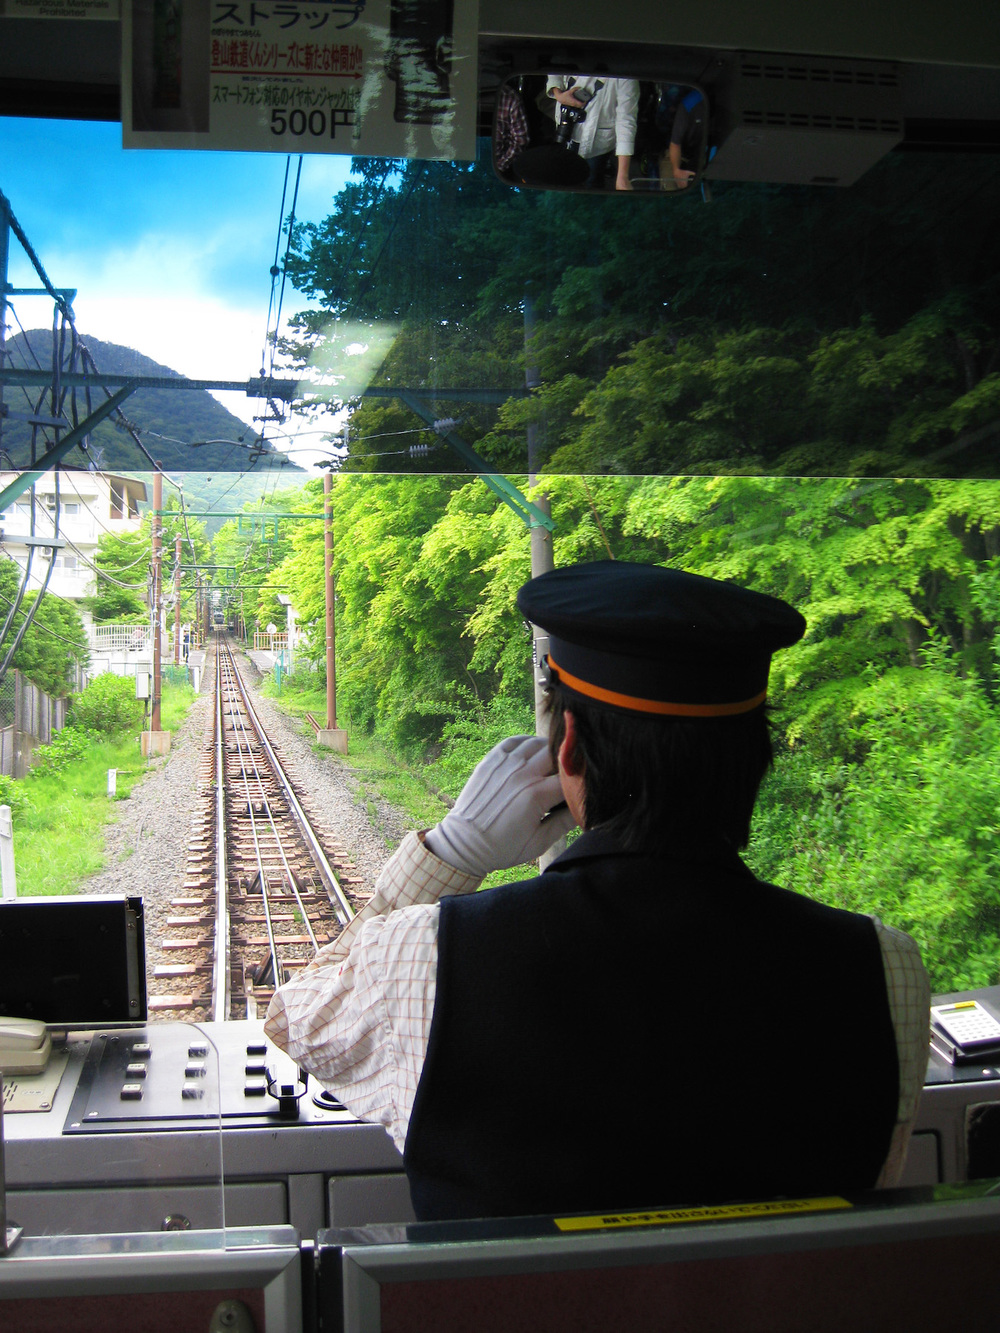 Another smartly dressed rail conductor, making our way to Souzan Station on the way to Owakudane Station where they boil the black lucky eggs (eggs set in boiling sulfur-water pools)along the Hakone loop. They take extreme pride in their sharply made outfits with special watches, gloves, and hats.